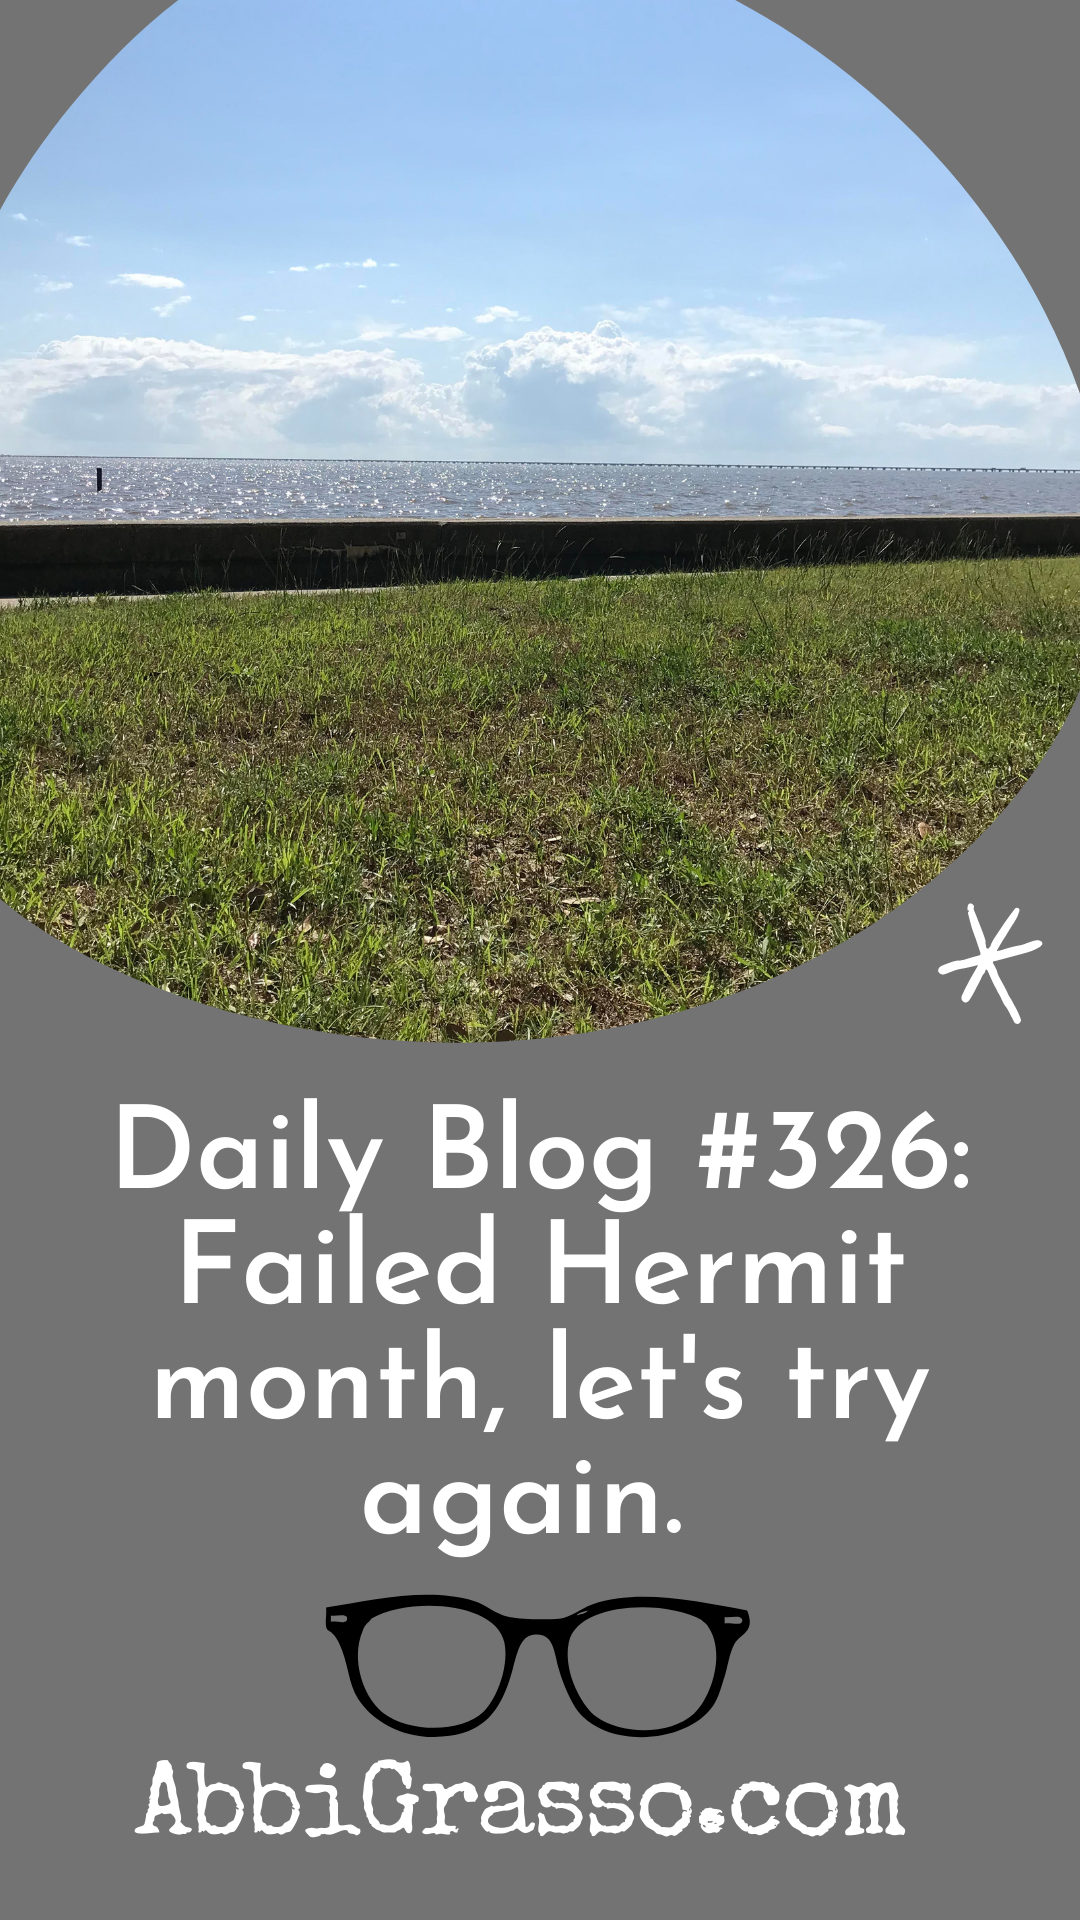 Daily Blog #326: Failed Hermit month, let's try again.